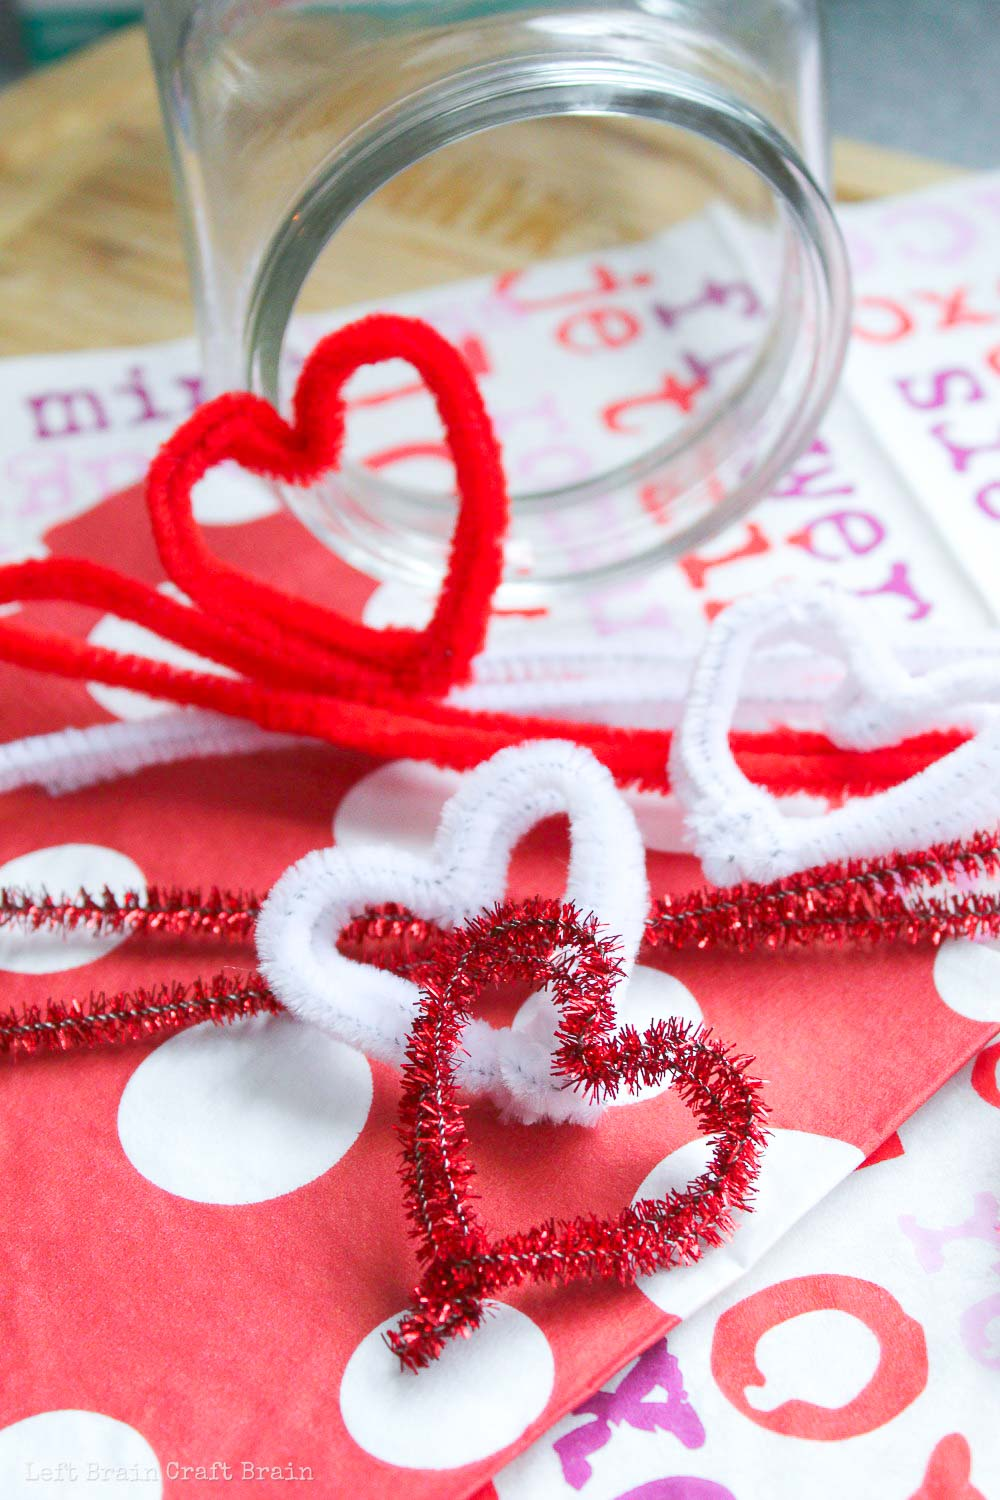 Form the pipe cleaner hearts